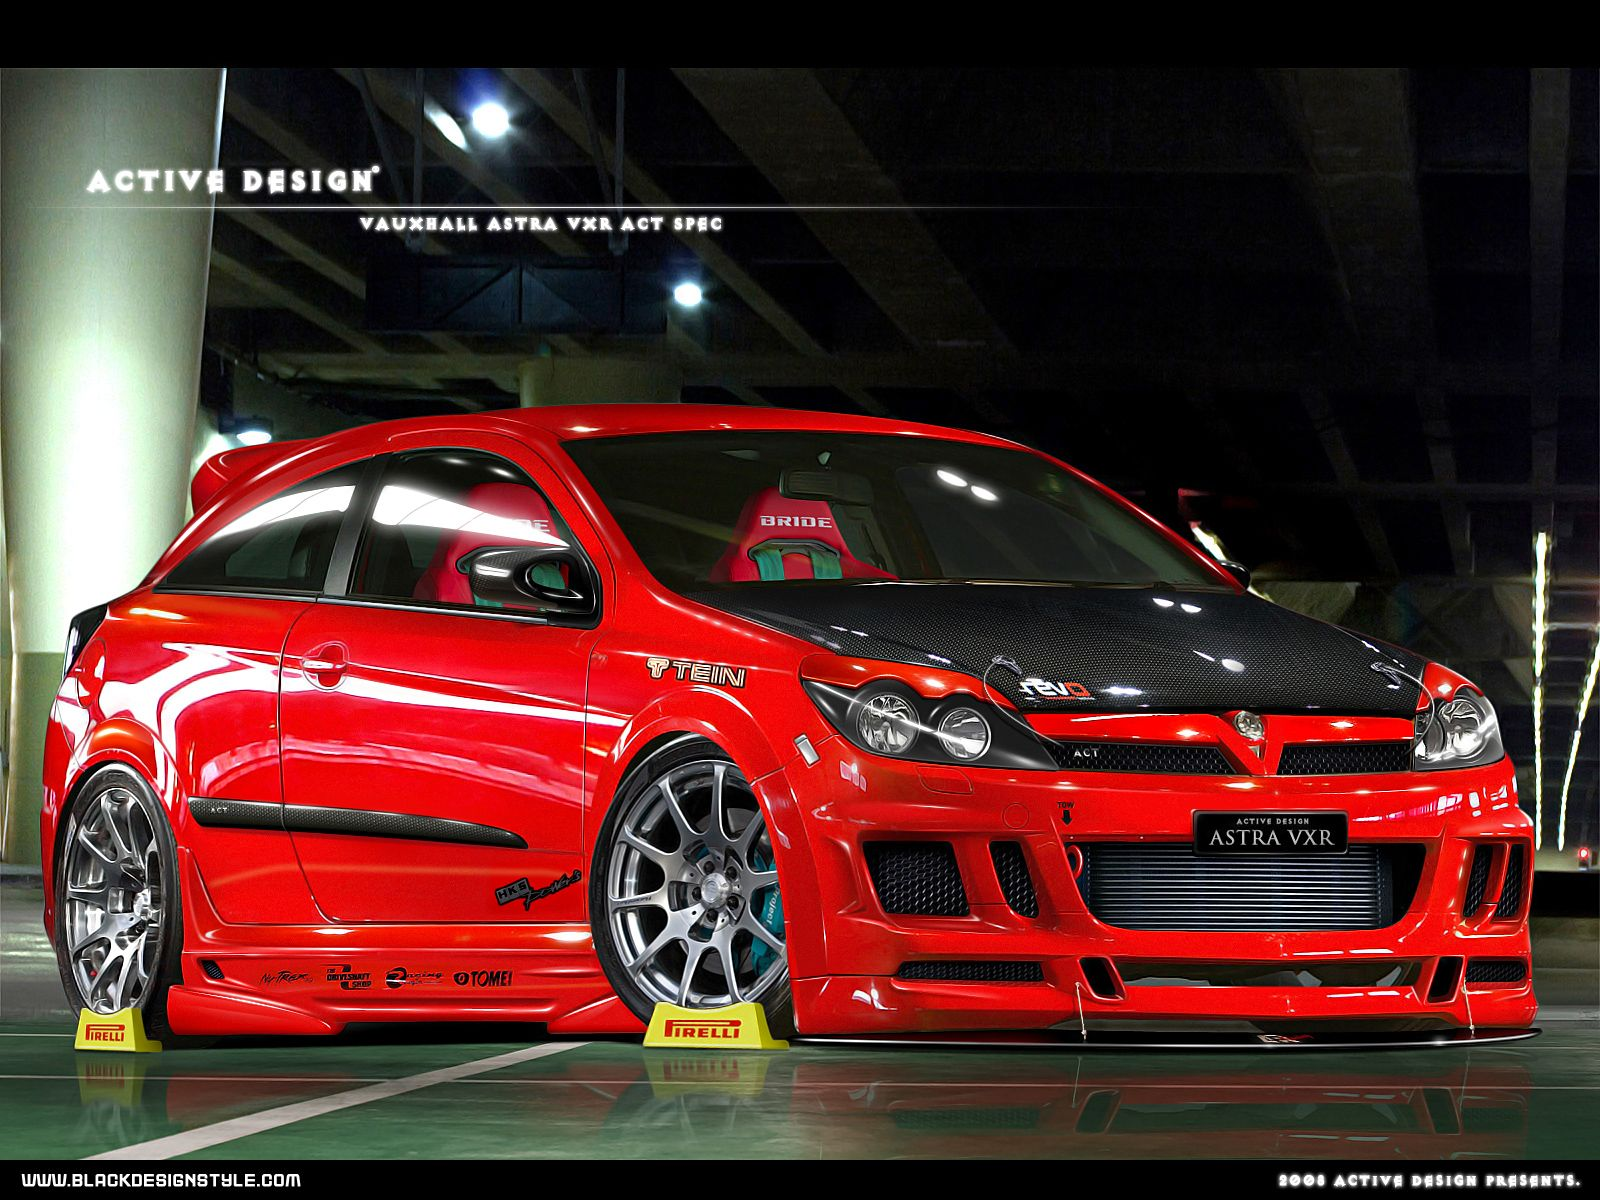 Opel astra h opc 2005 opel astra h opc 2005 photo 06 car in - Vauxhall Astra Vxr By Active Design Deviantart Com On Deviantart